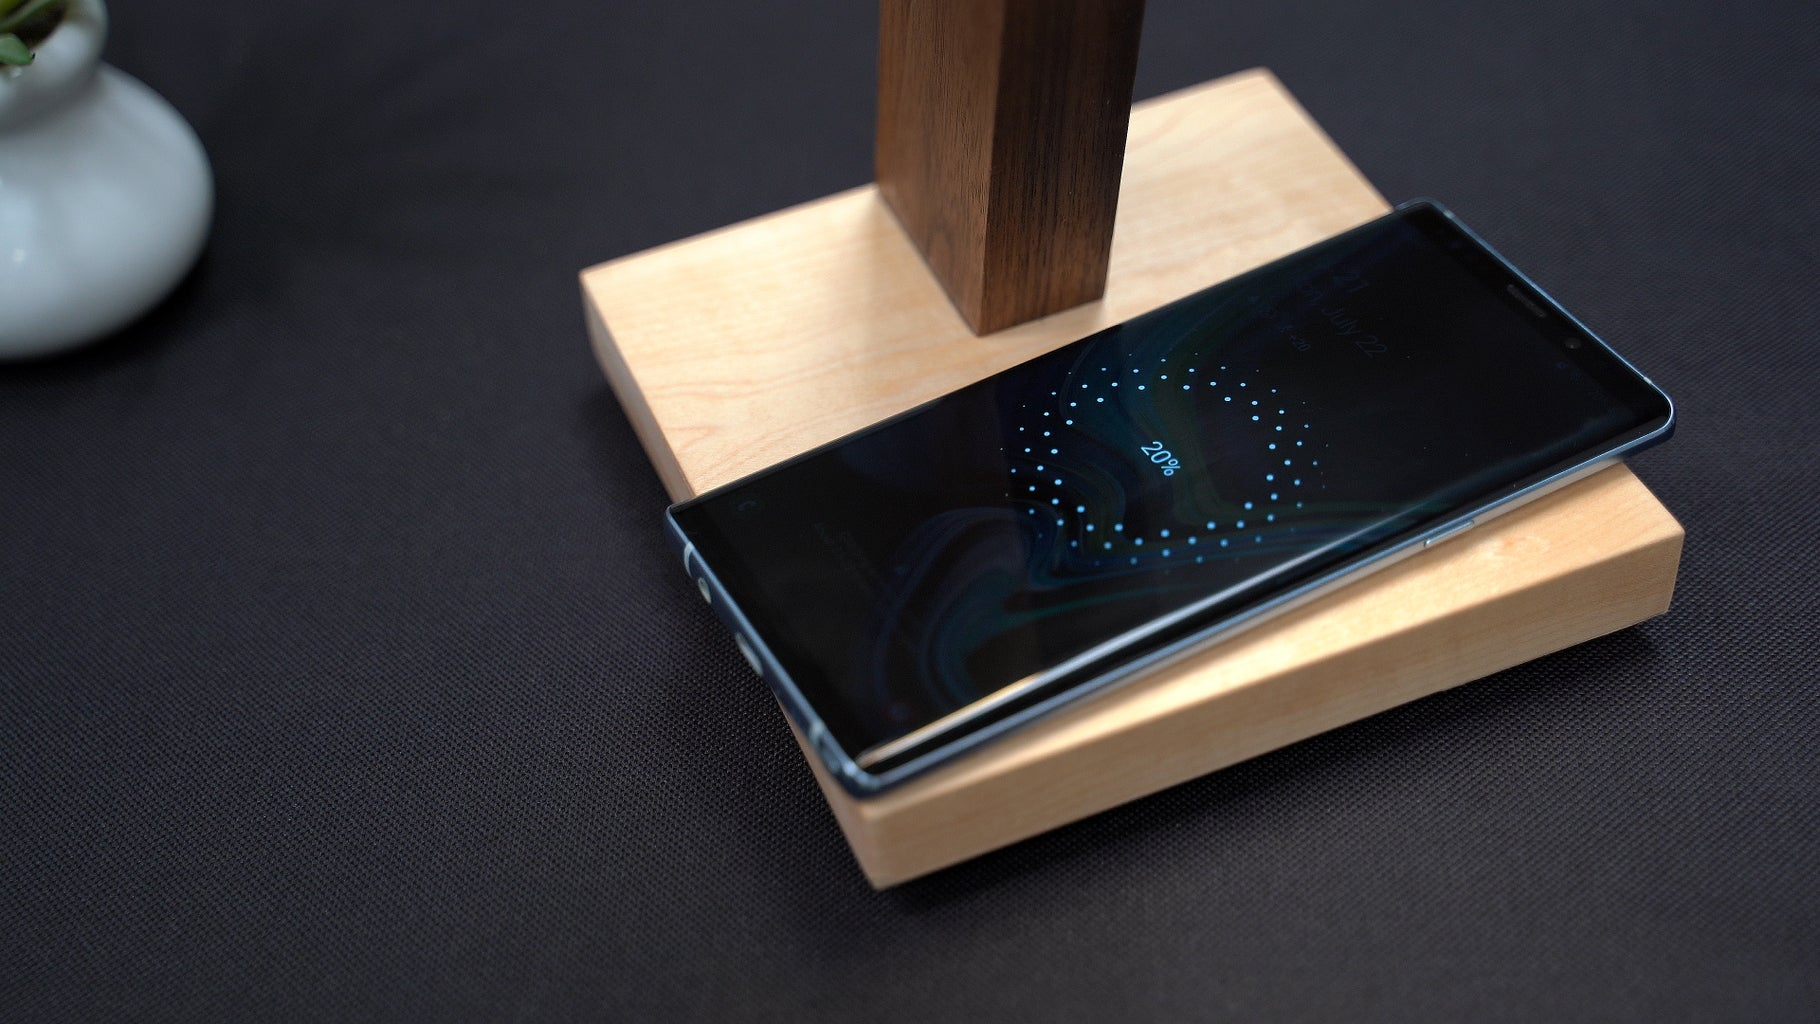 Installing the Wireless Charger